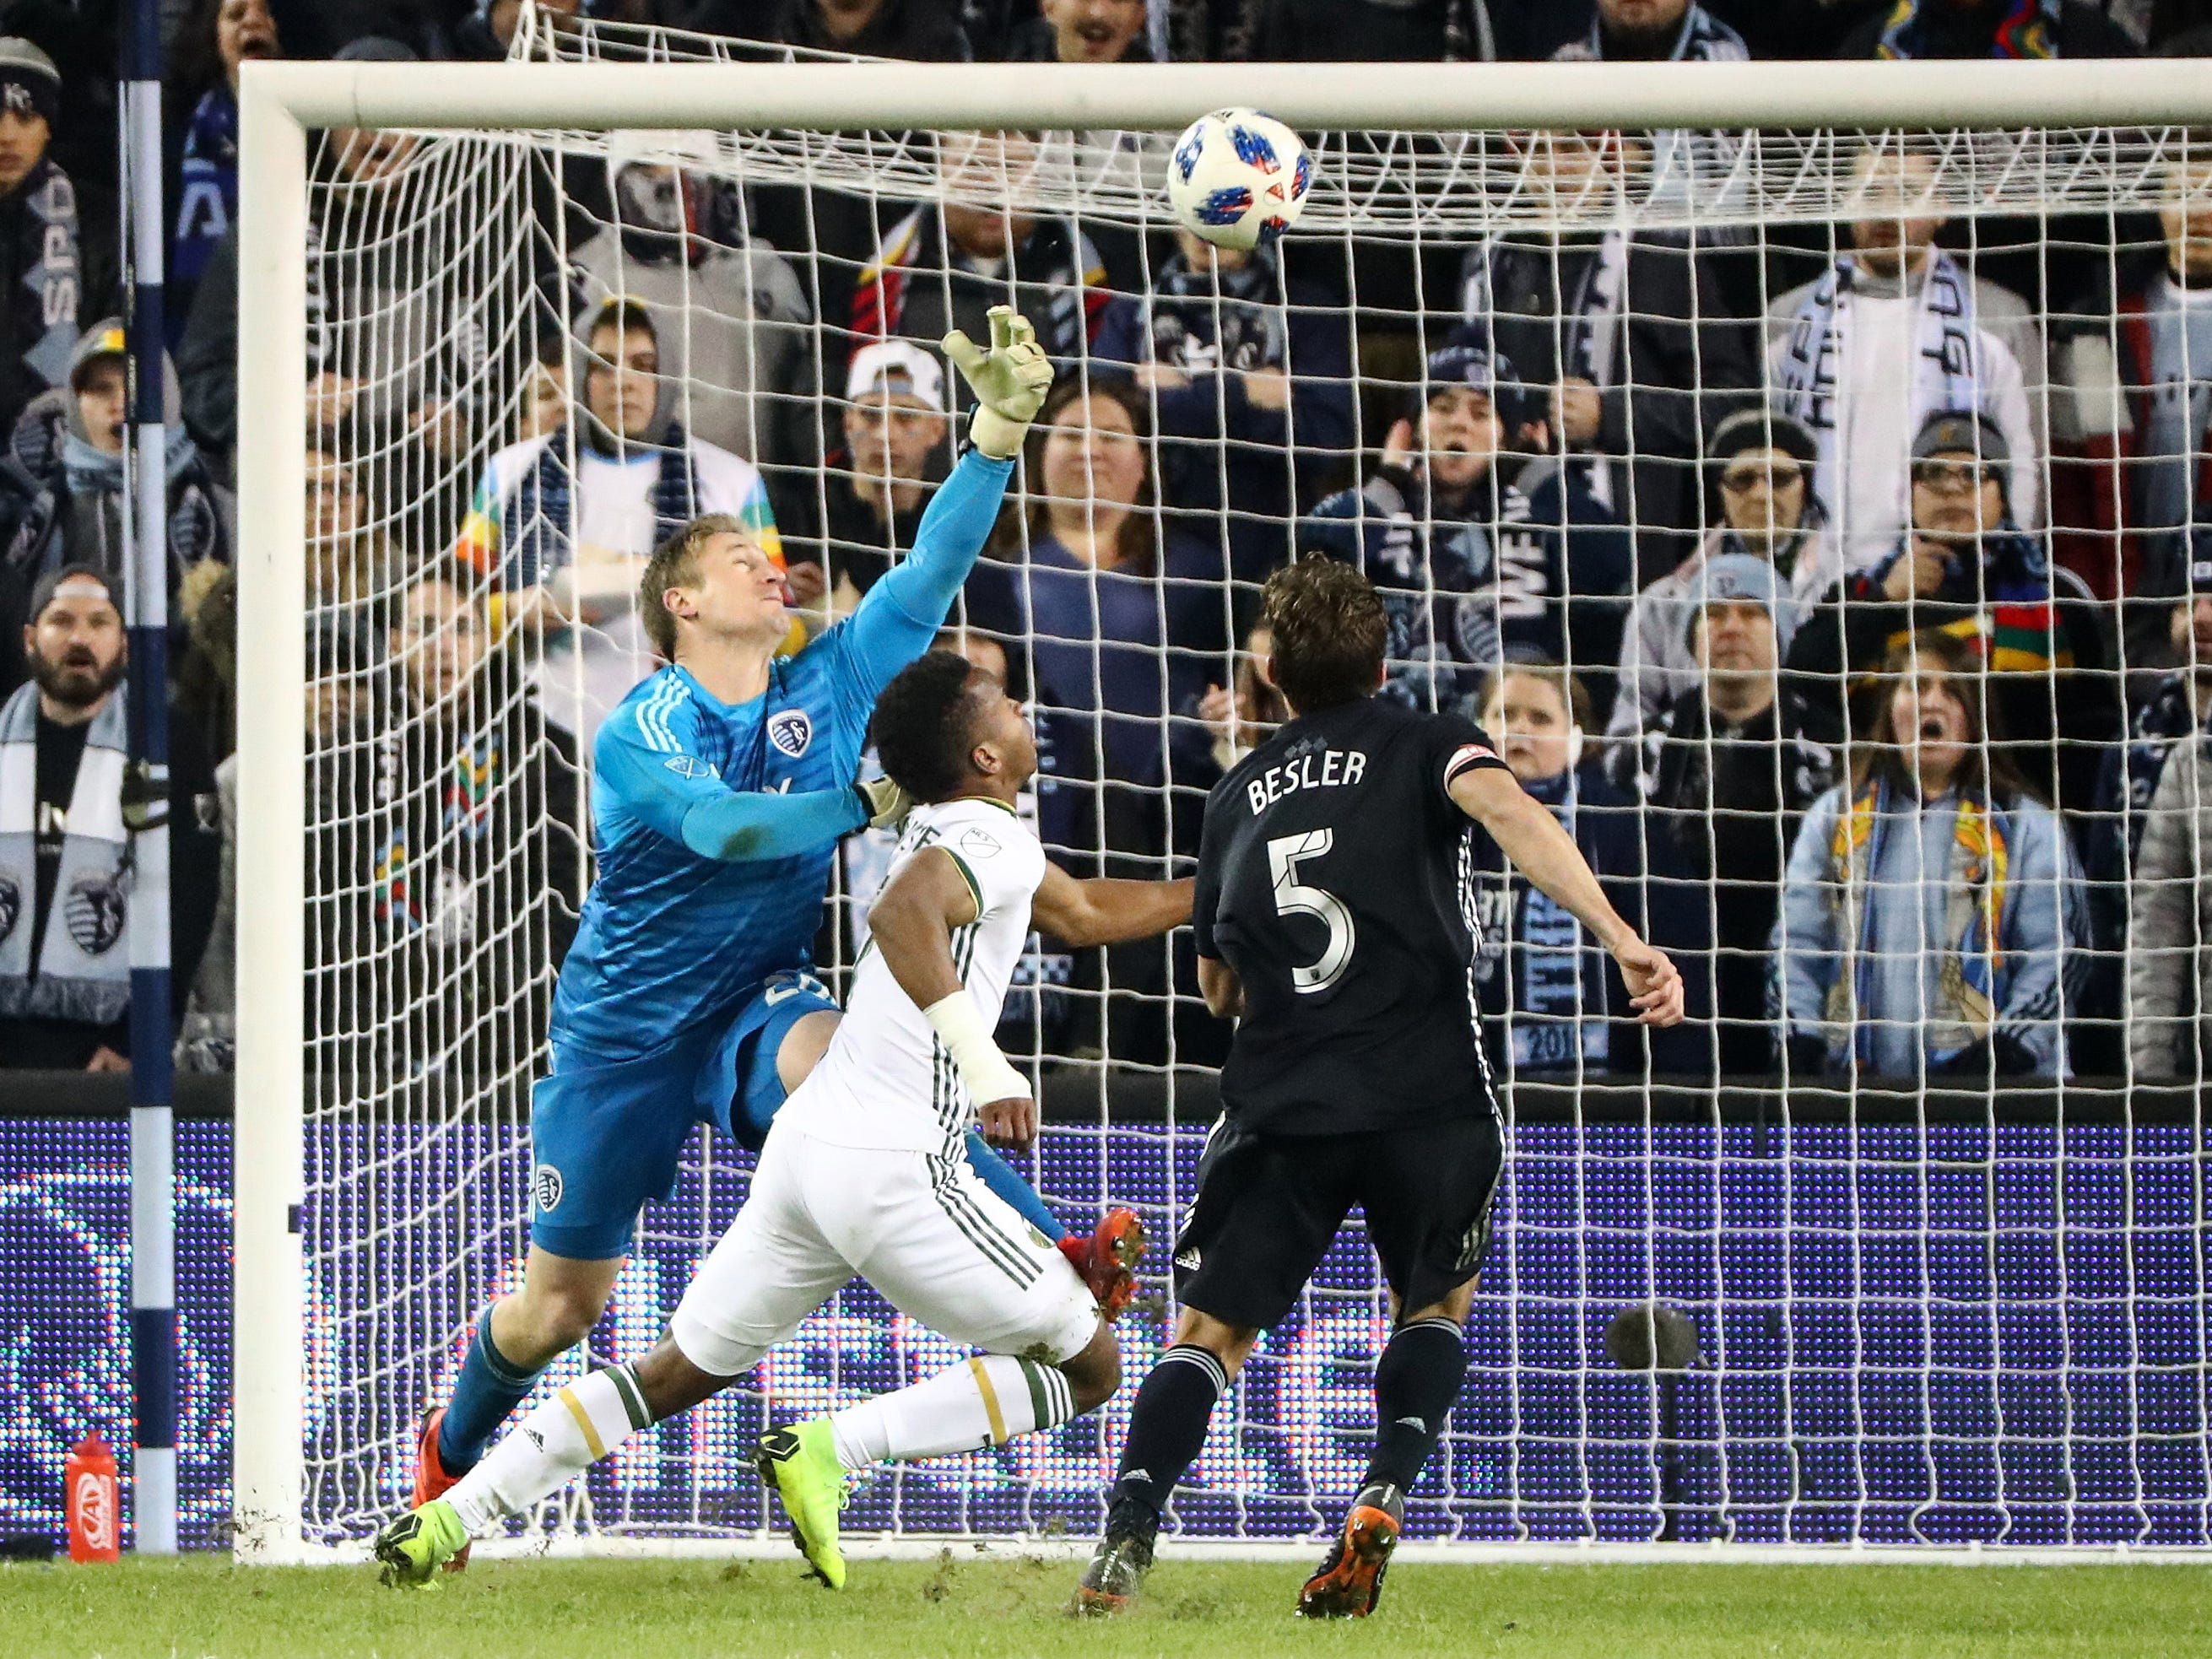 Sporting Kansas City goalkeeper Tim Melia is unable to stop a pass from Portland Timbers forward Jeremy Ebobisse during the second half in the second leg of the MLS Western Conference Championship at Children's Mercy Park.